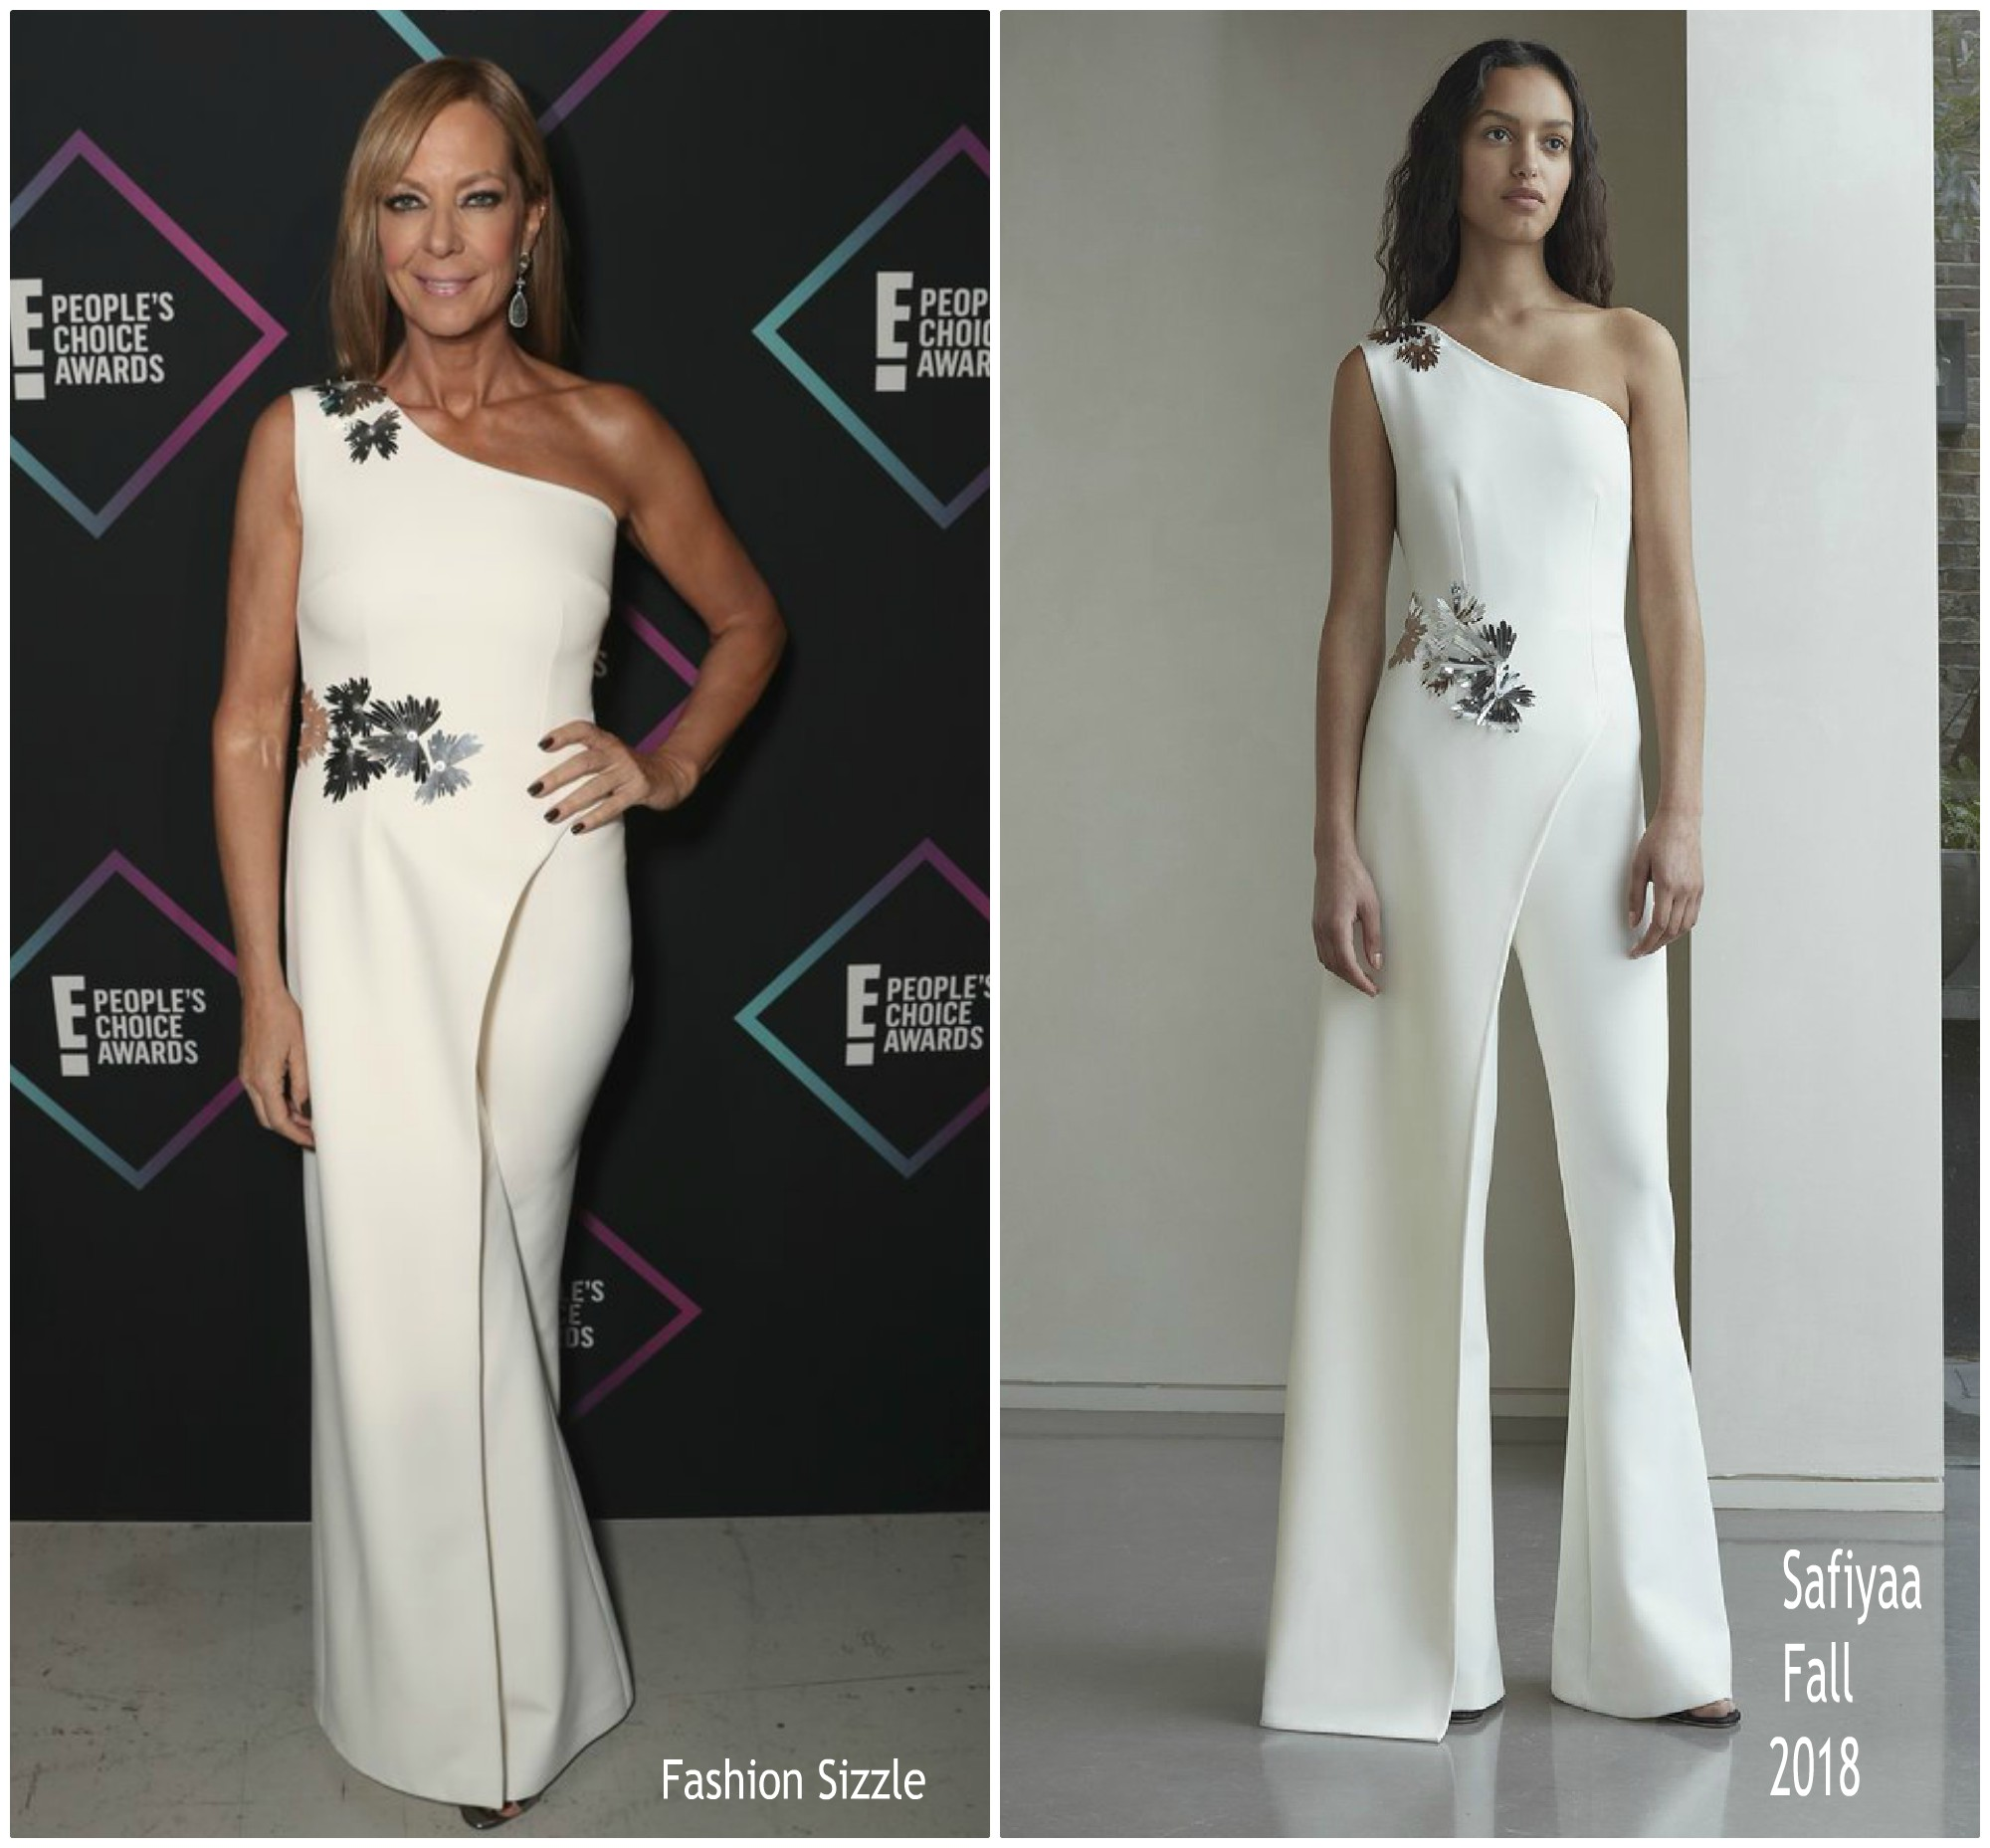 allison-janney-in-safiyaa-peoples-choice-awards-2018